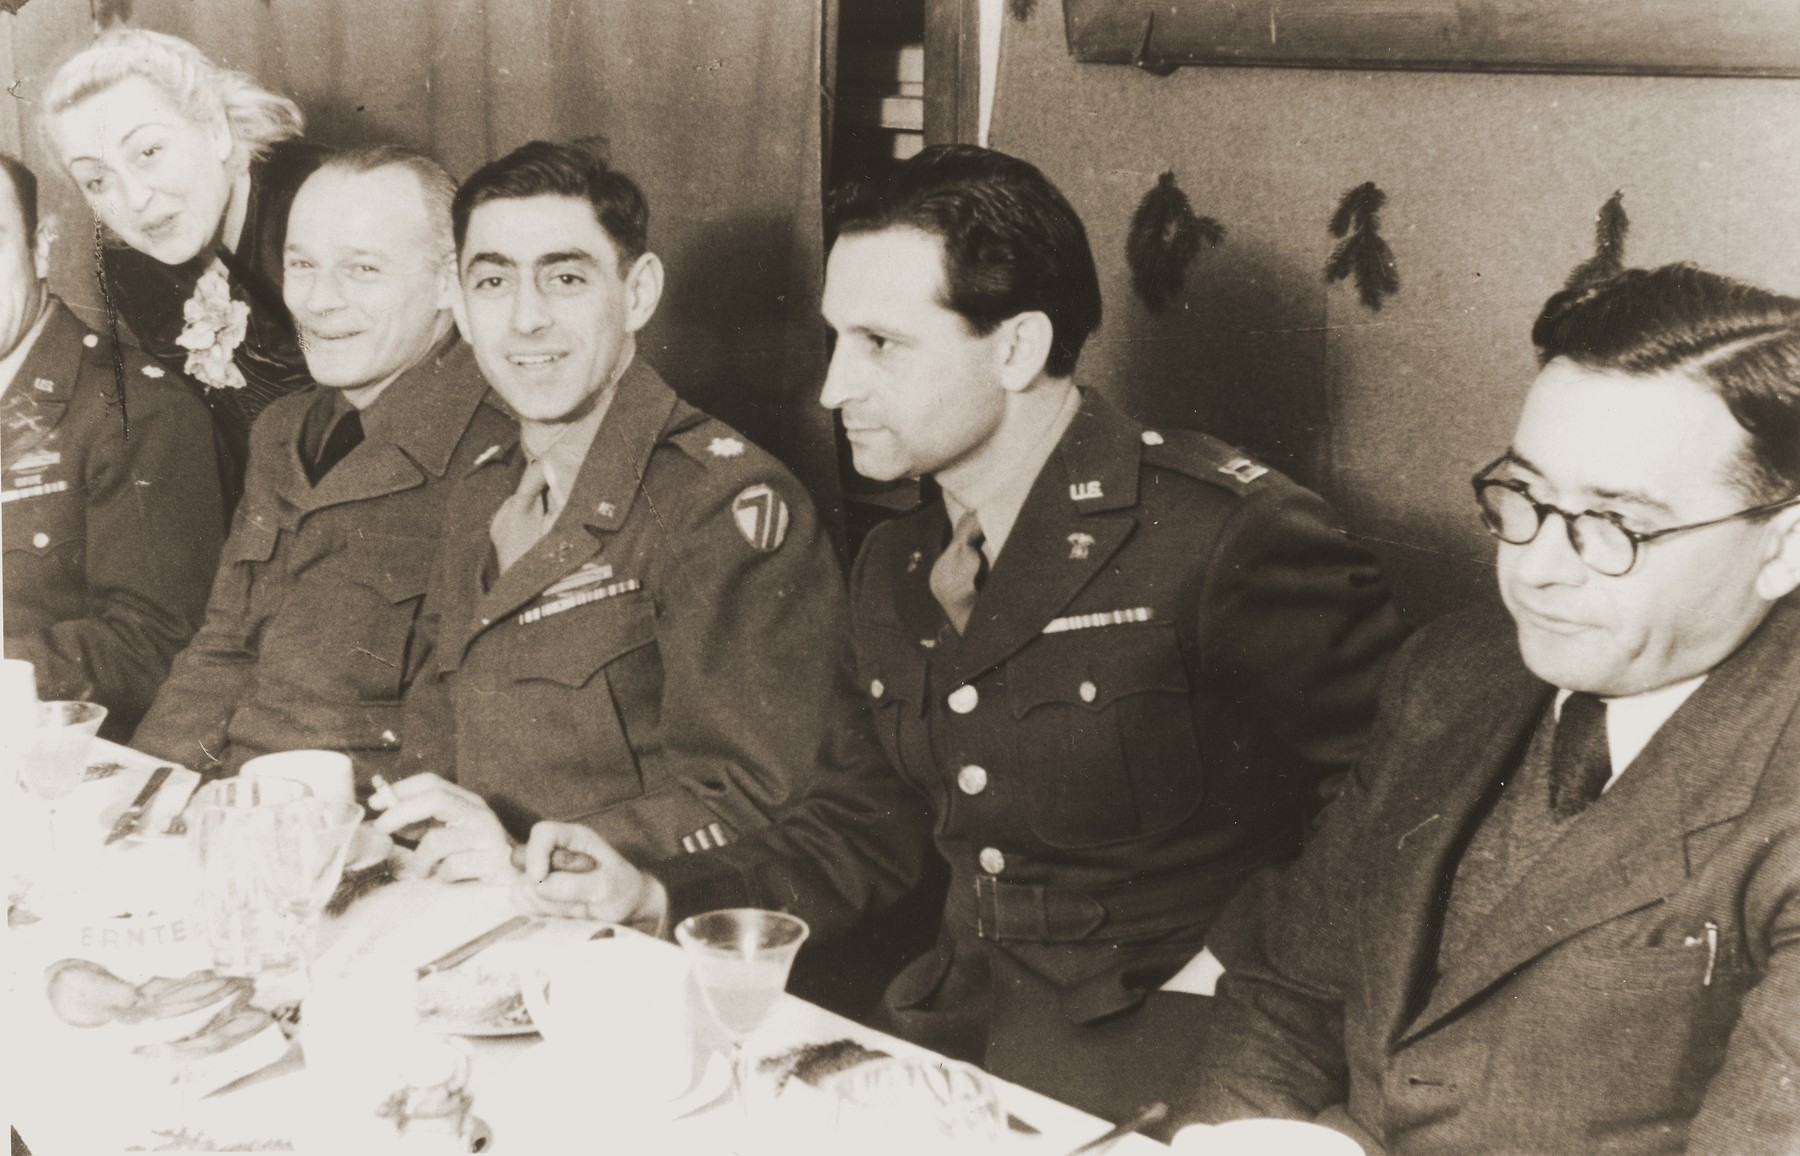 Farewell dinner for Major Irving Heymont and Captain David Trott marking their departure as administrators of the Landsberg DP camp.  Among those pictured are (from left to right) Ala Gringauz (nee Bergholz), Dr. Abraham Glassgold, UNRRA director, Major Irving Heymont, Captain David Trott and Dr. Samuel Gringauz.